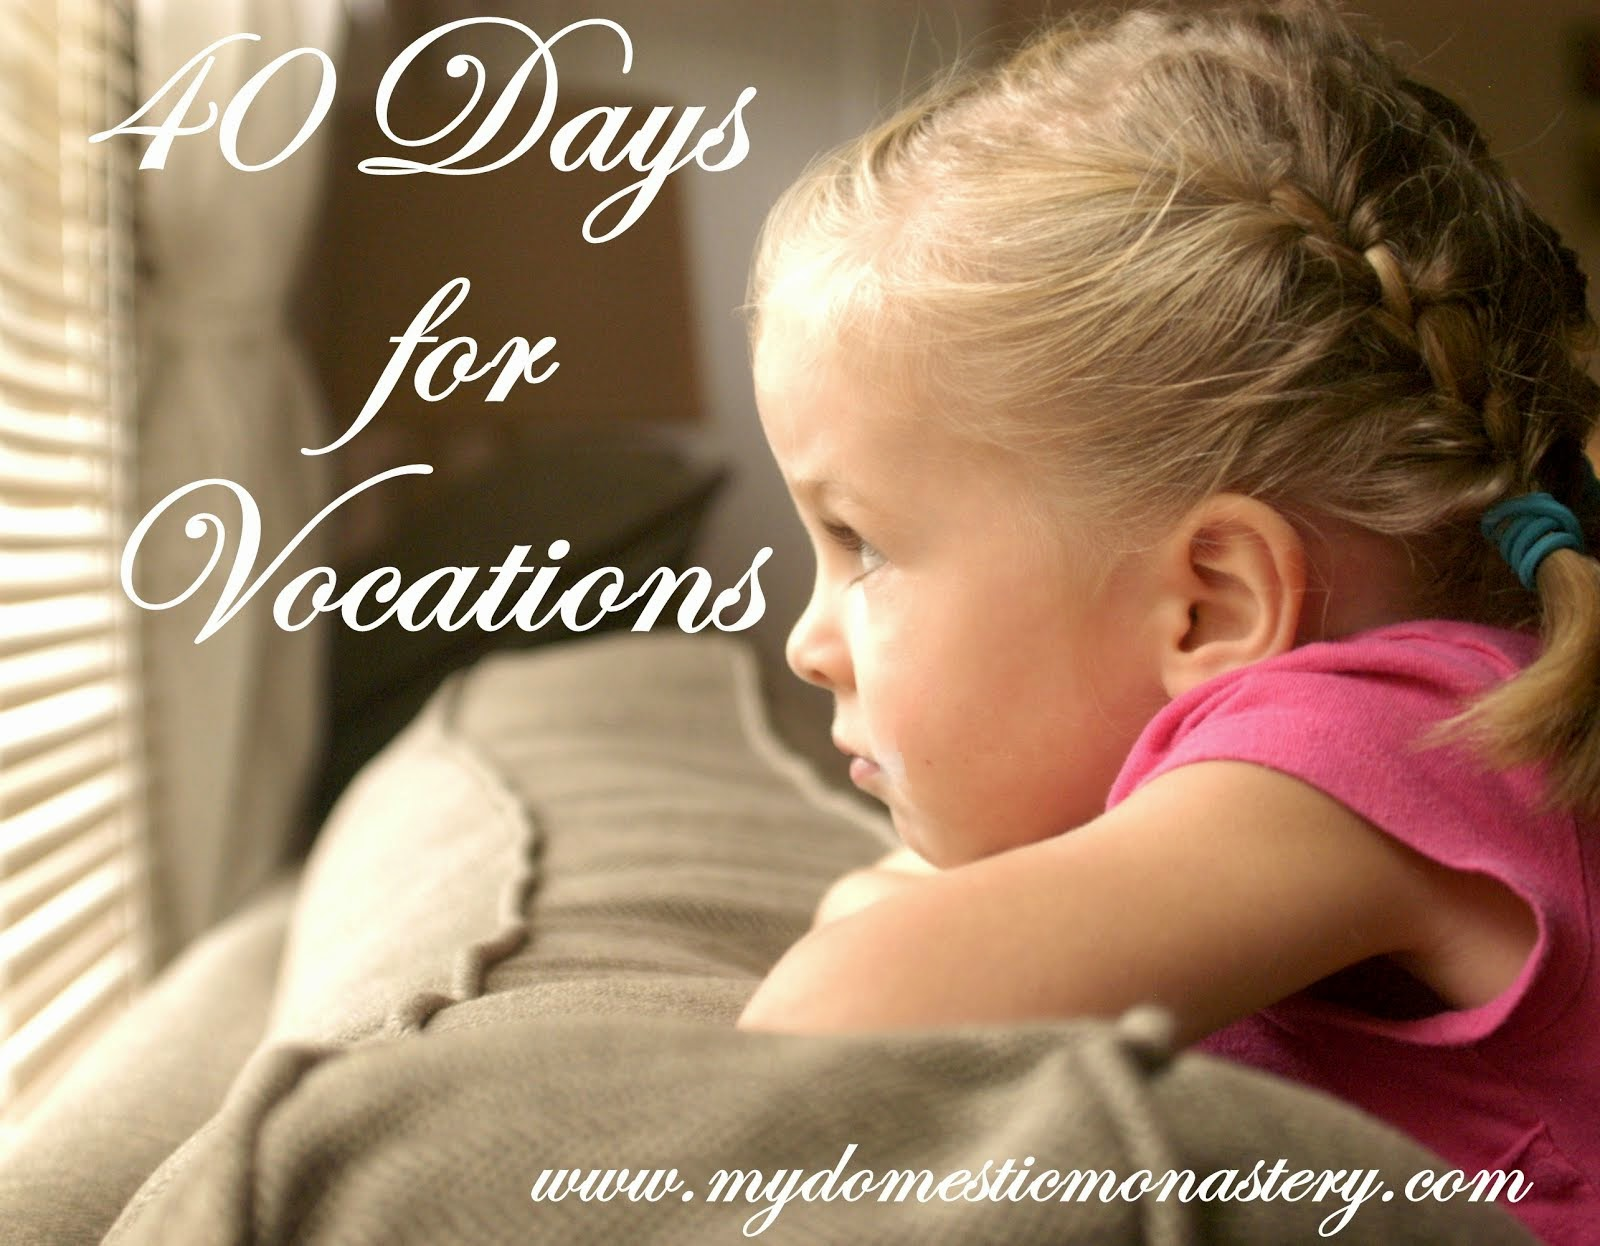 40 Days for Vocations